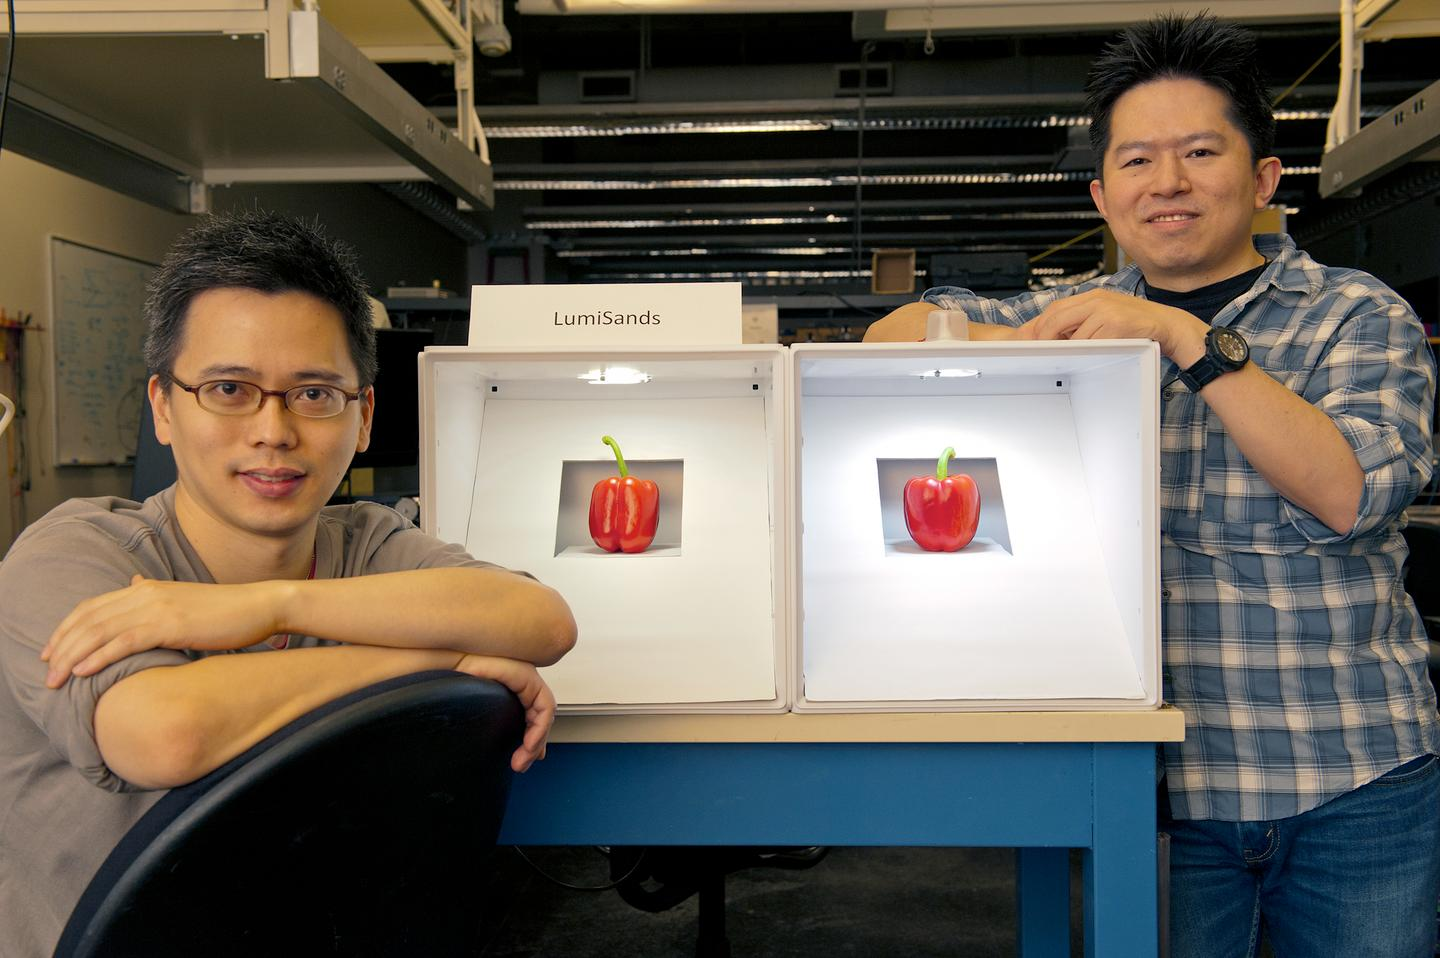 LumiSands founders Chang-Ching Tu (left) and Ji Hoo, demonstrating the warmer hue of an LED bulb utilizing their technology